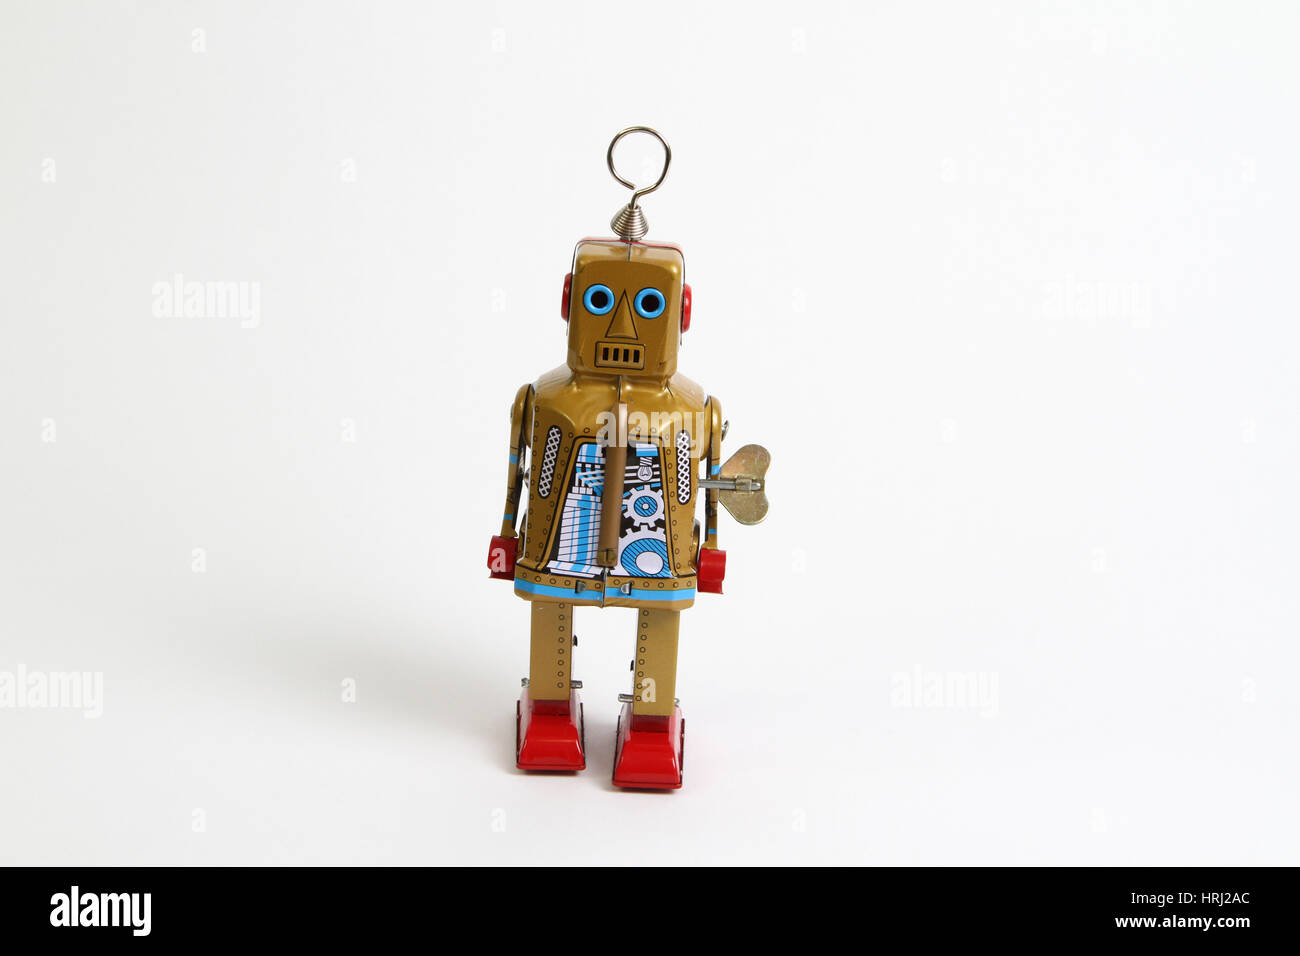 Toy robot - Stock Image